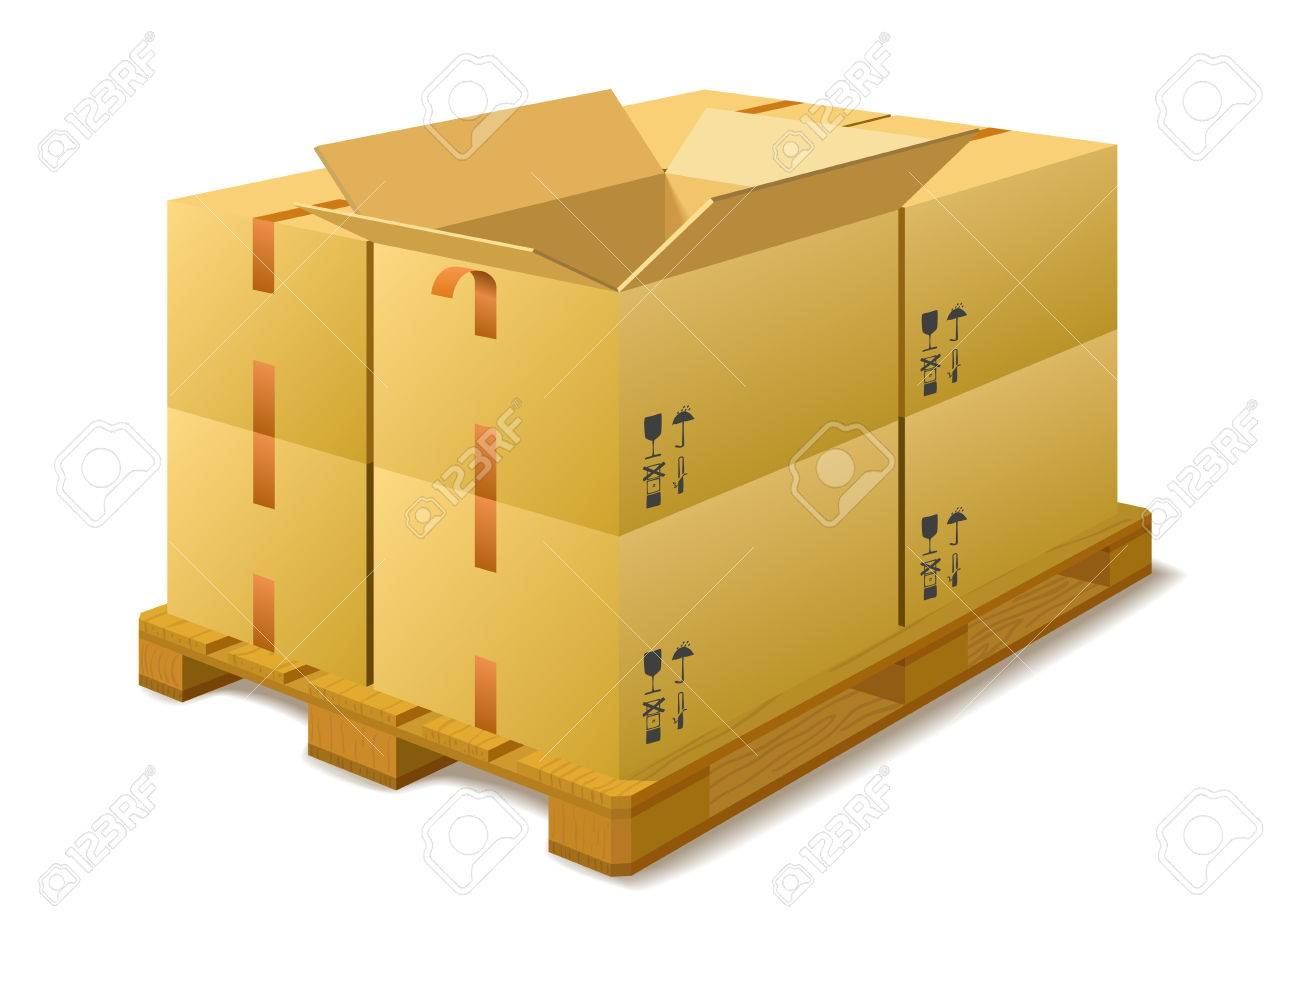 Cardboard boxes on a pallet in a warehouse on a white background - 24959019